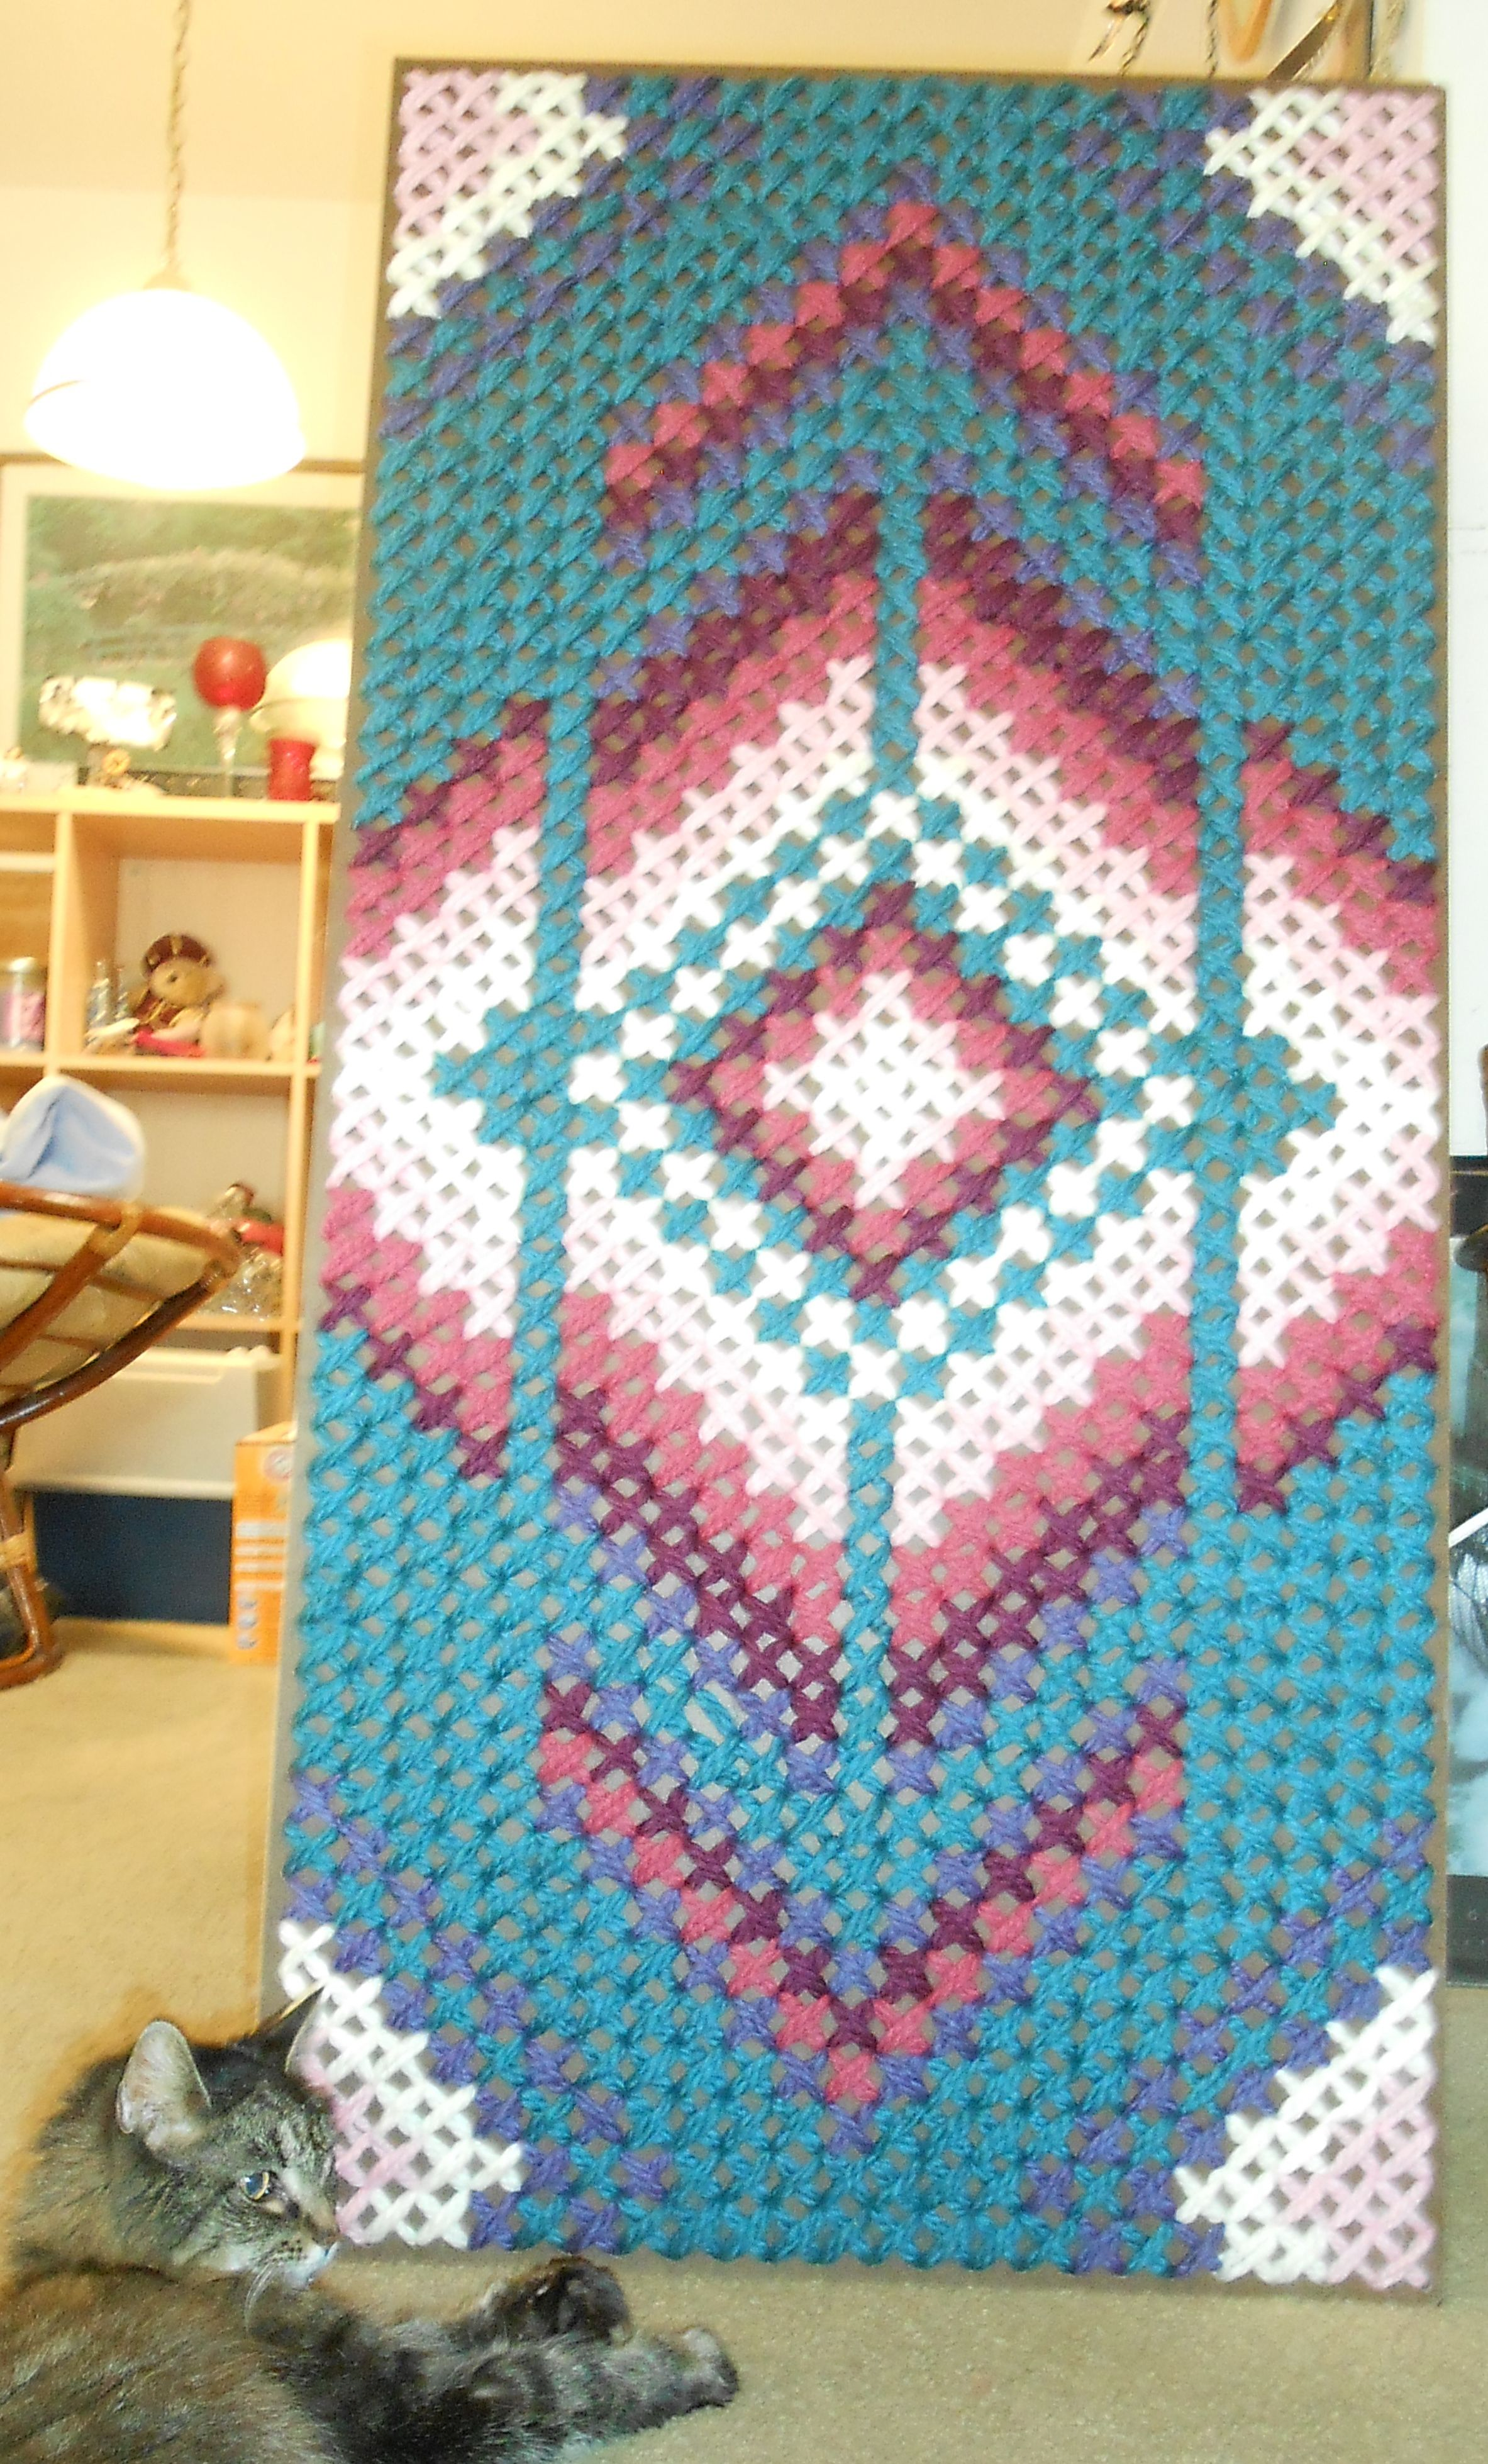 Large scale cross-stitch done on pegboard with yarn. My kitty is ...